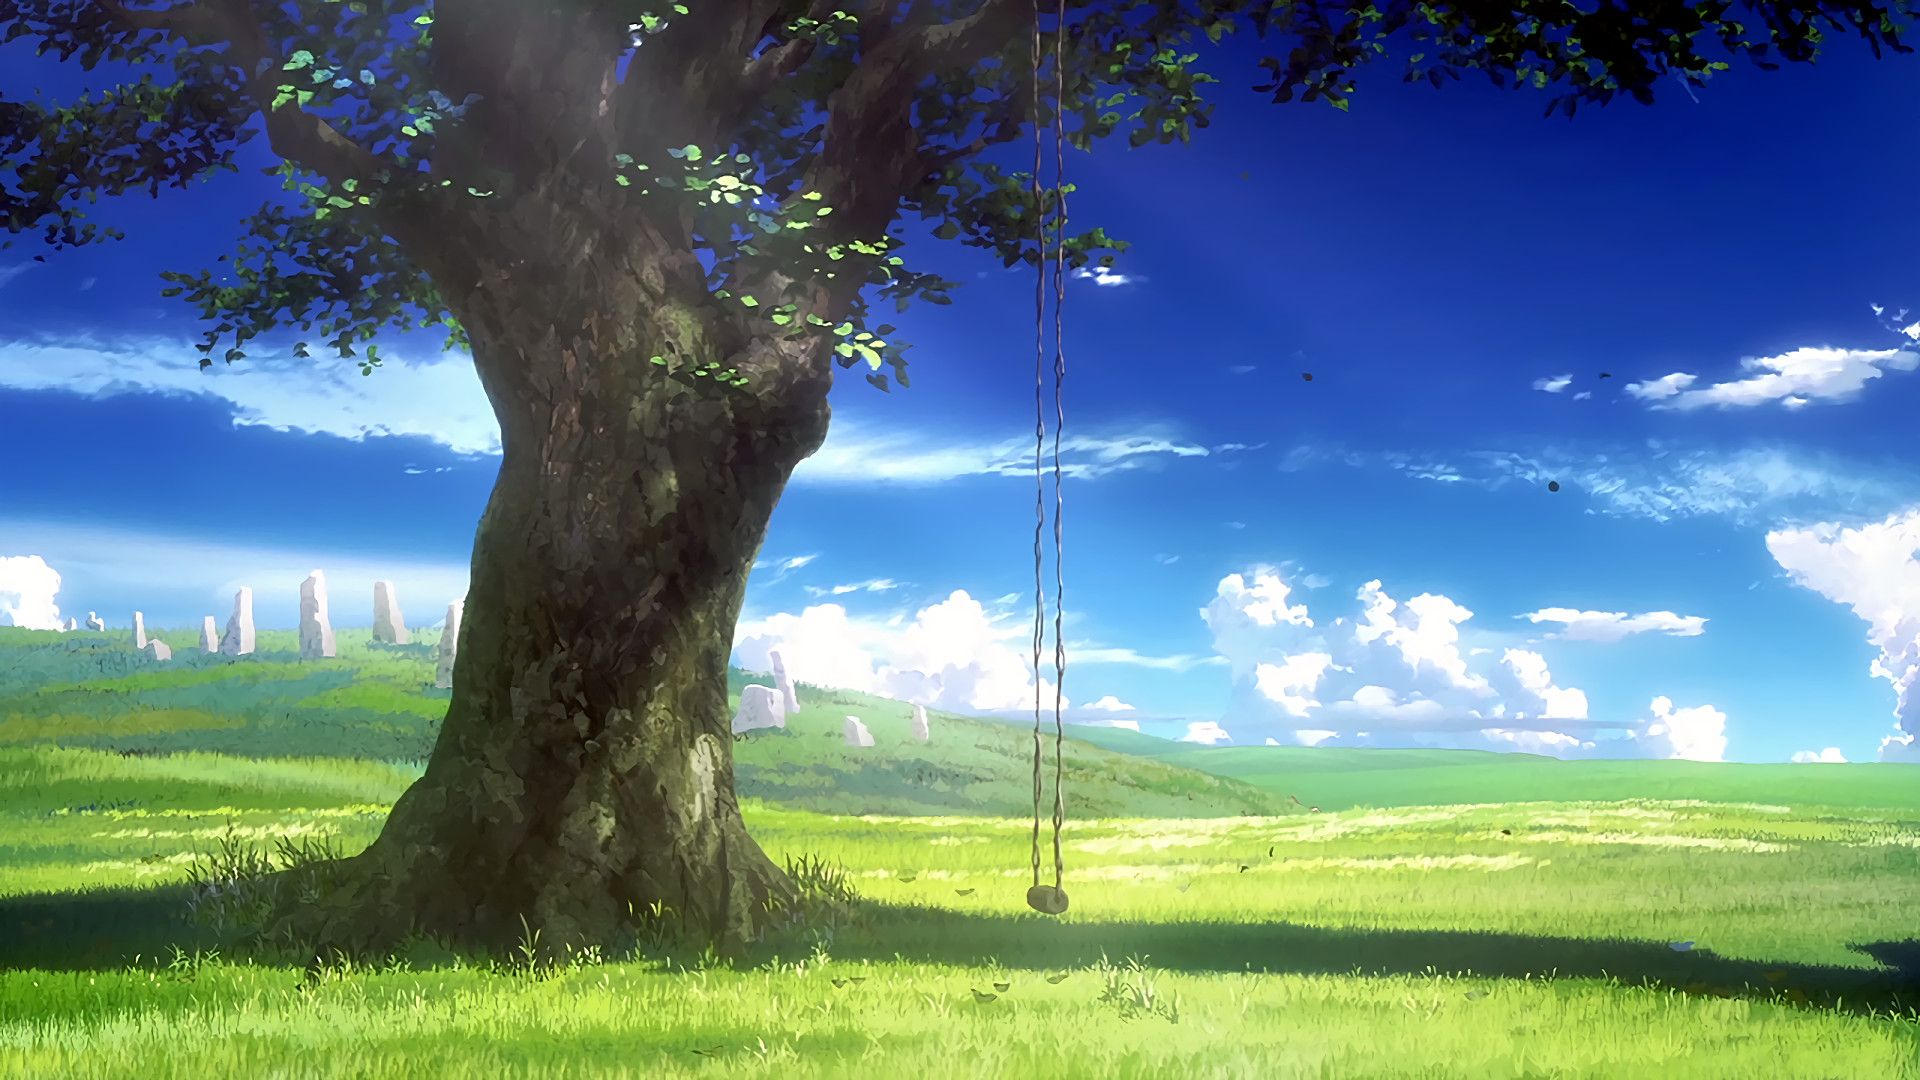 Hd Wallpaper Background Id 750482 1920x1080 Anime Shelter 1920x1080 Anime Scenery Anime Background Anime Scenery Wallpaper